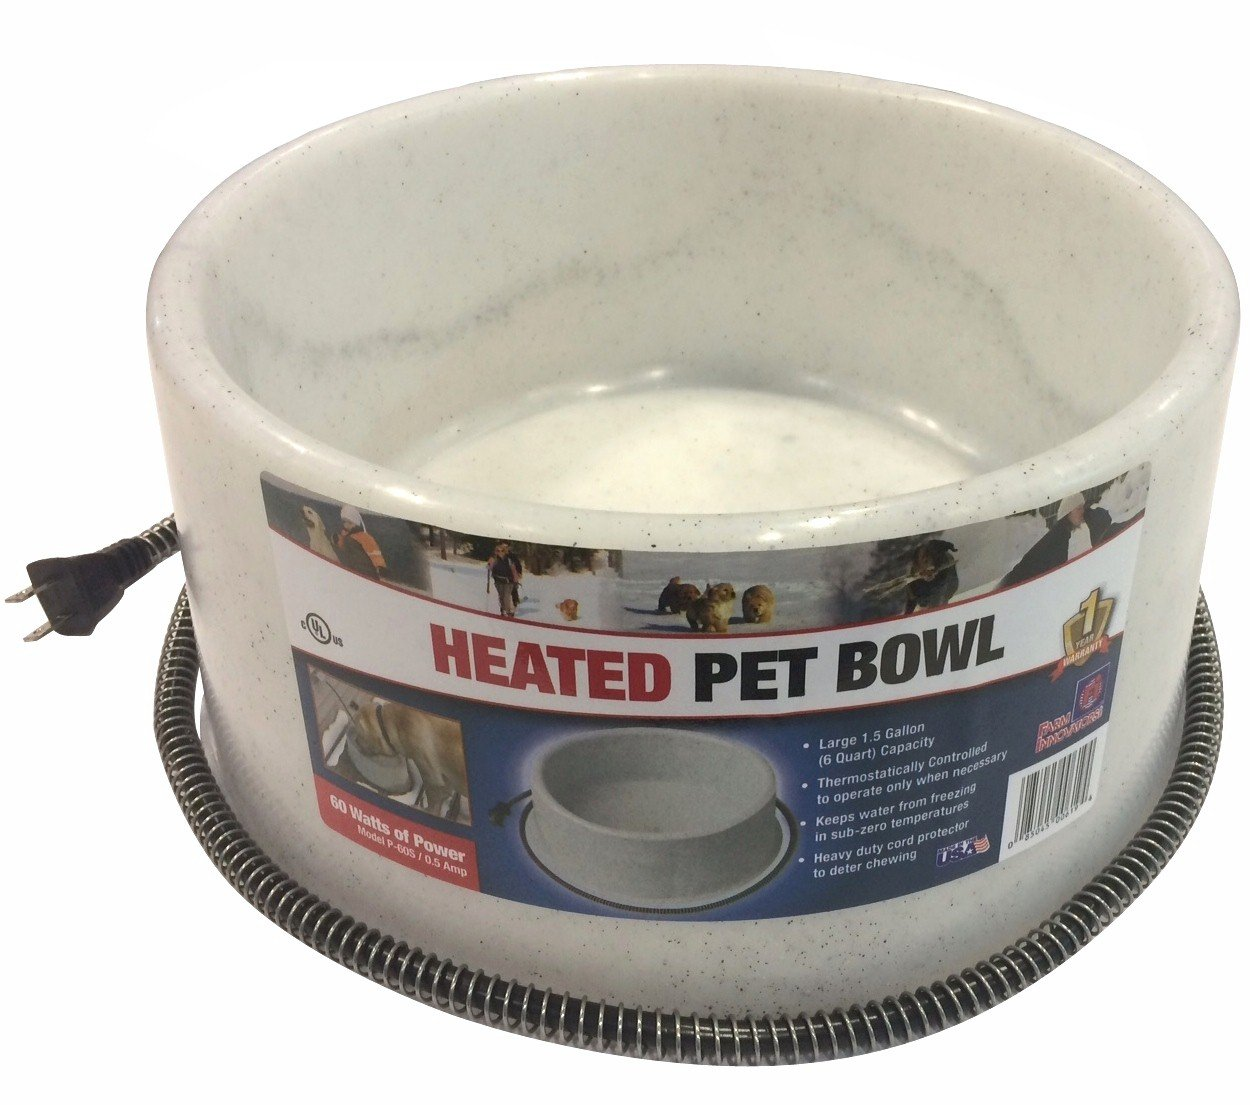 Farm Innovators Model P-60S 1-1/2-Gallon Round Heated Pet Bowl, Grey, 60-Watt